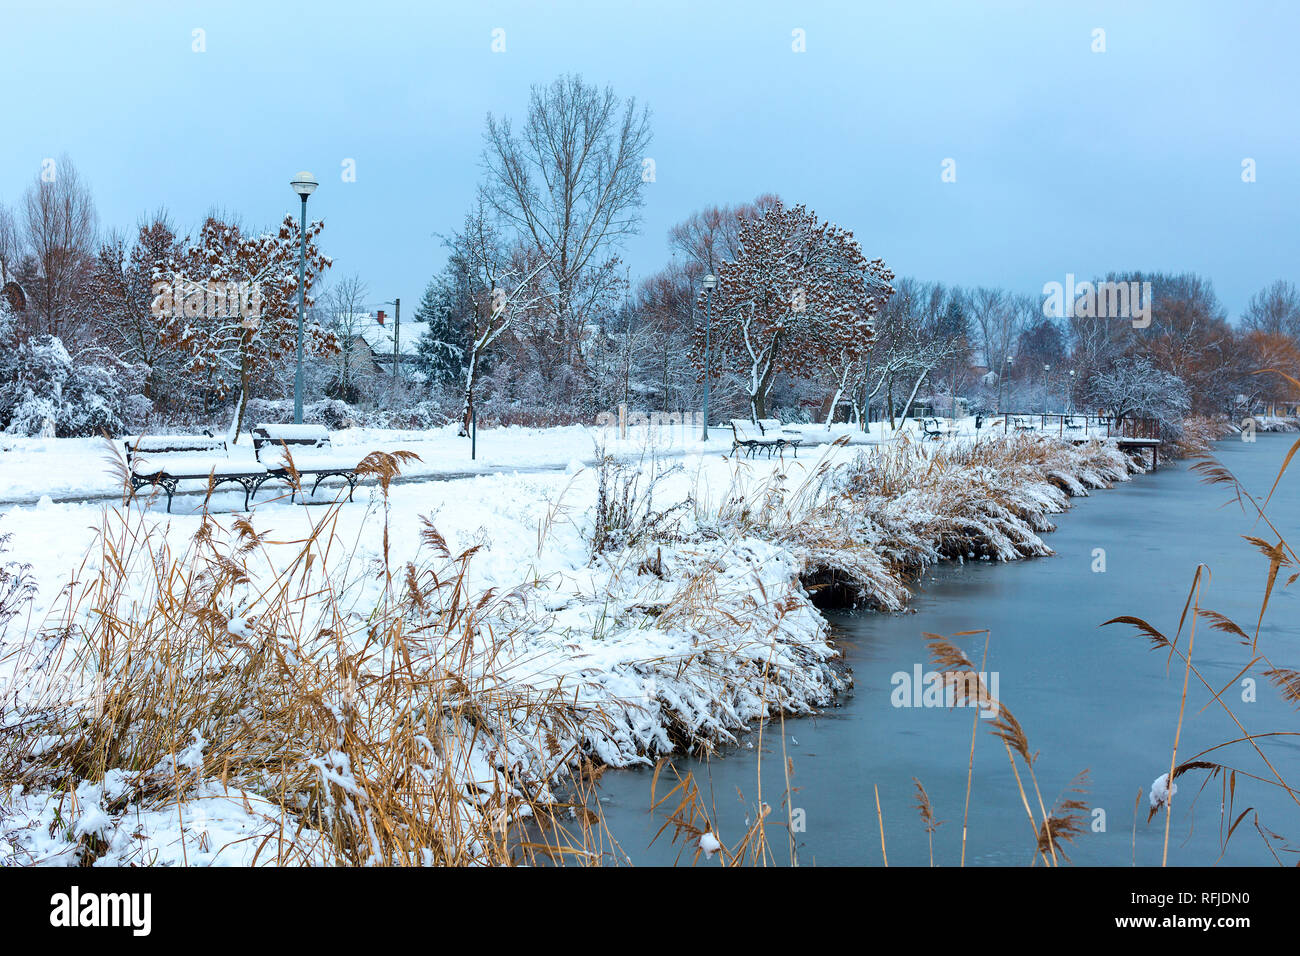 Beautiful winter landscape with frozen lake, snow covered trees and